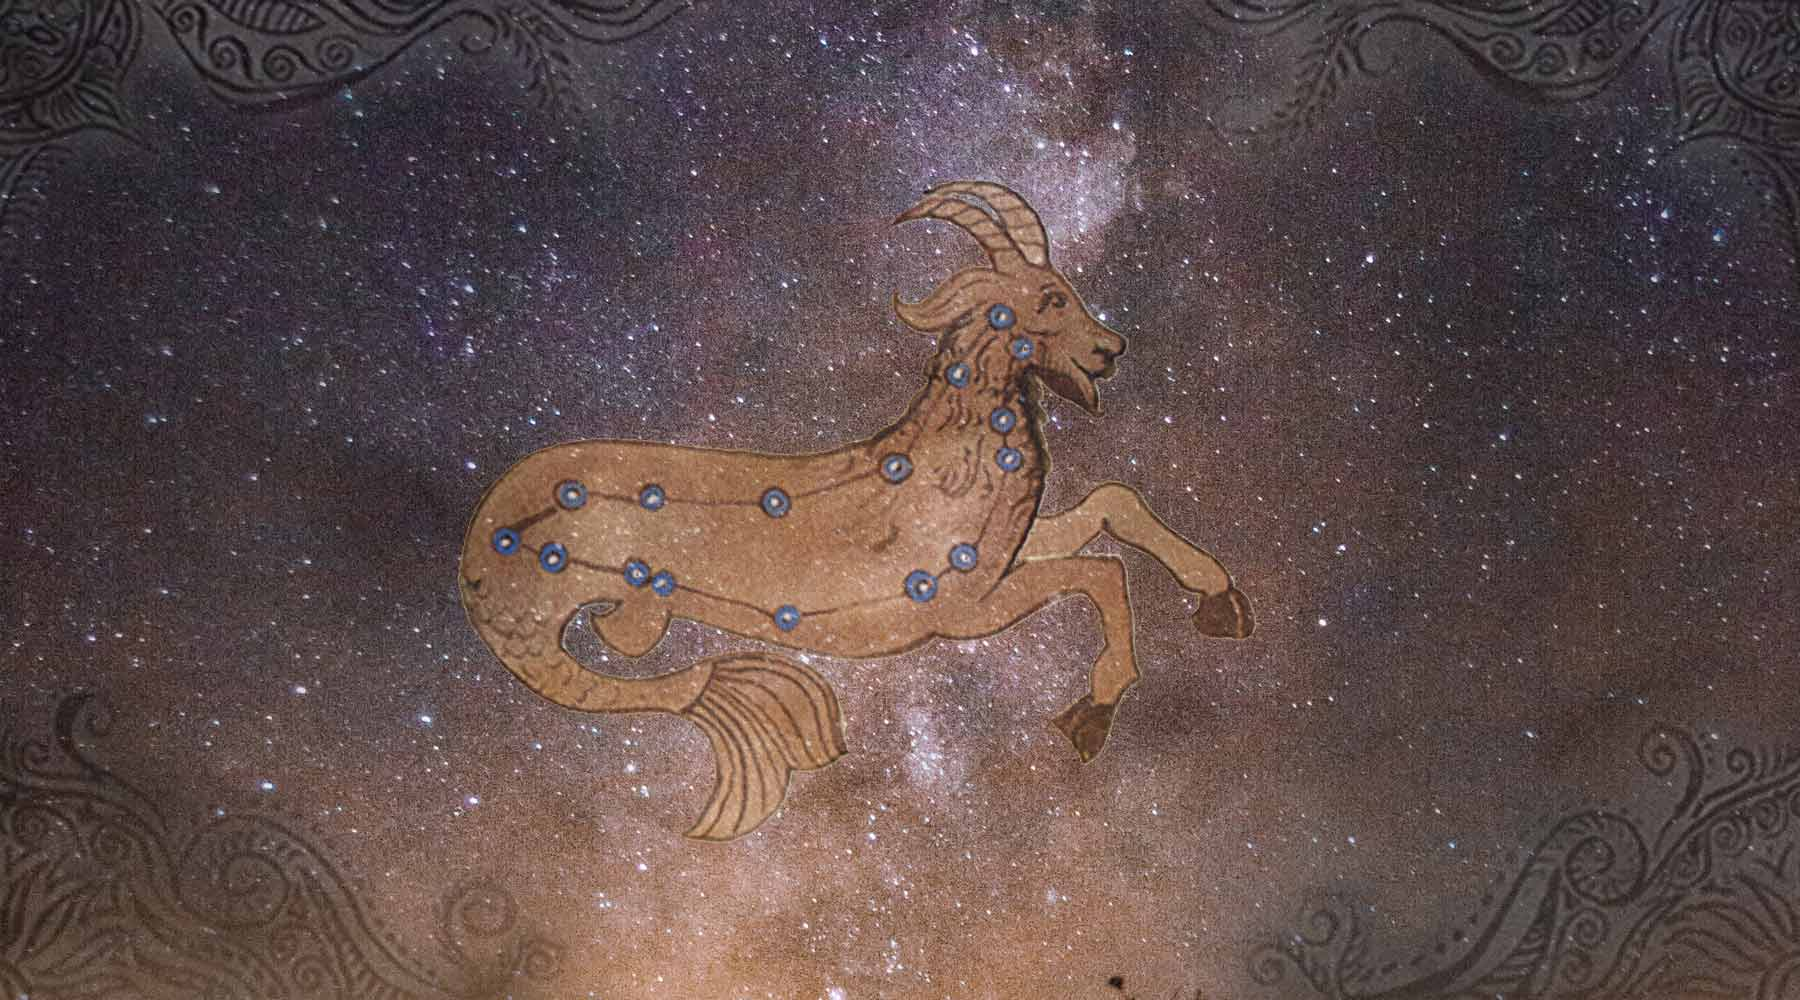 Capricorn meaning in Vedic Astrology